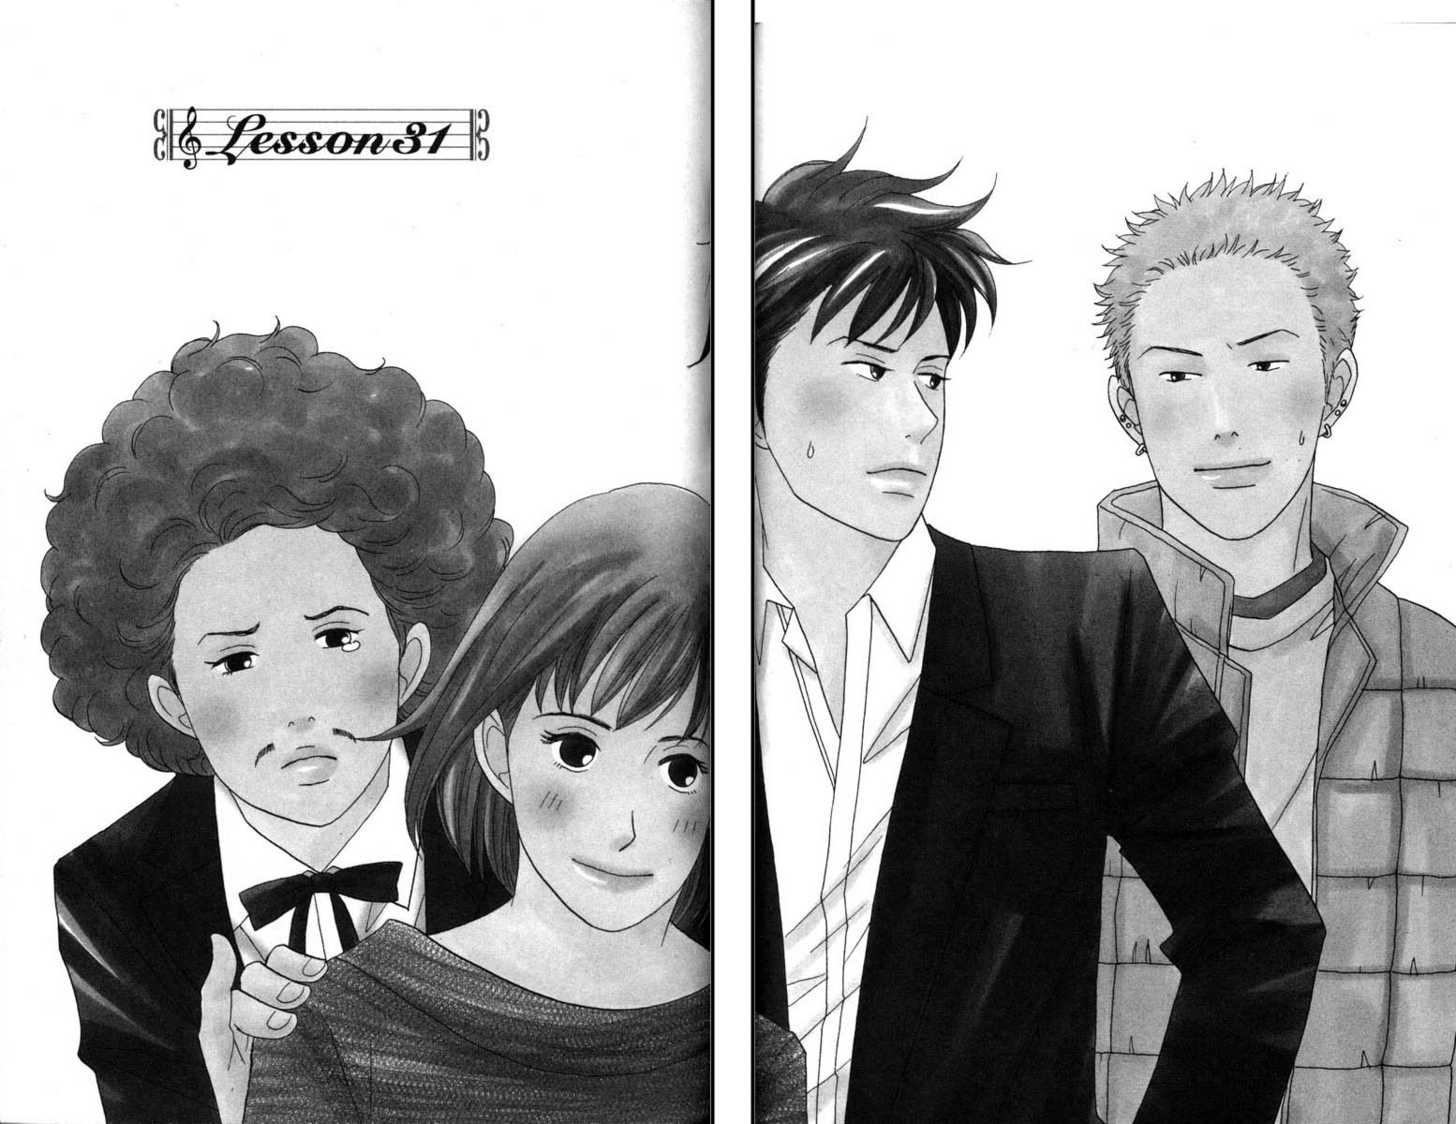 Nodame Cantabile 31 Page 1